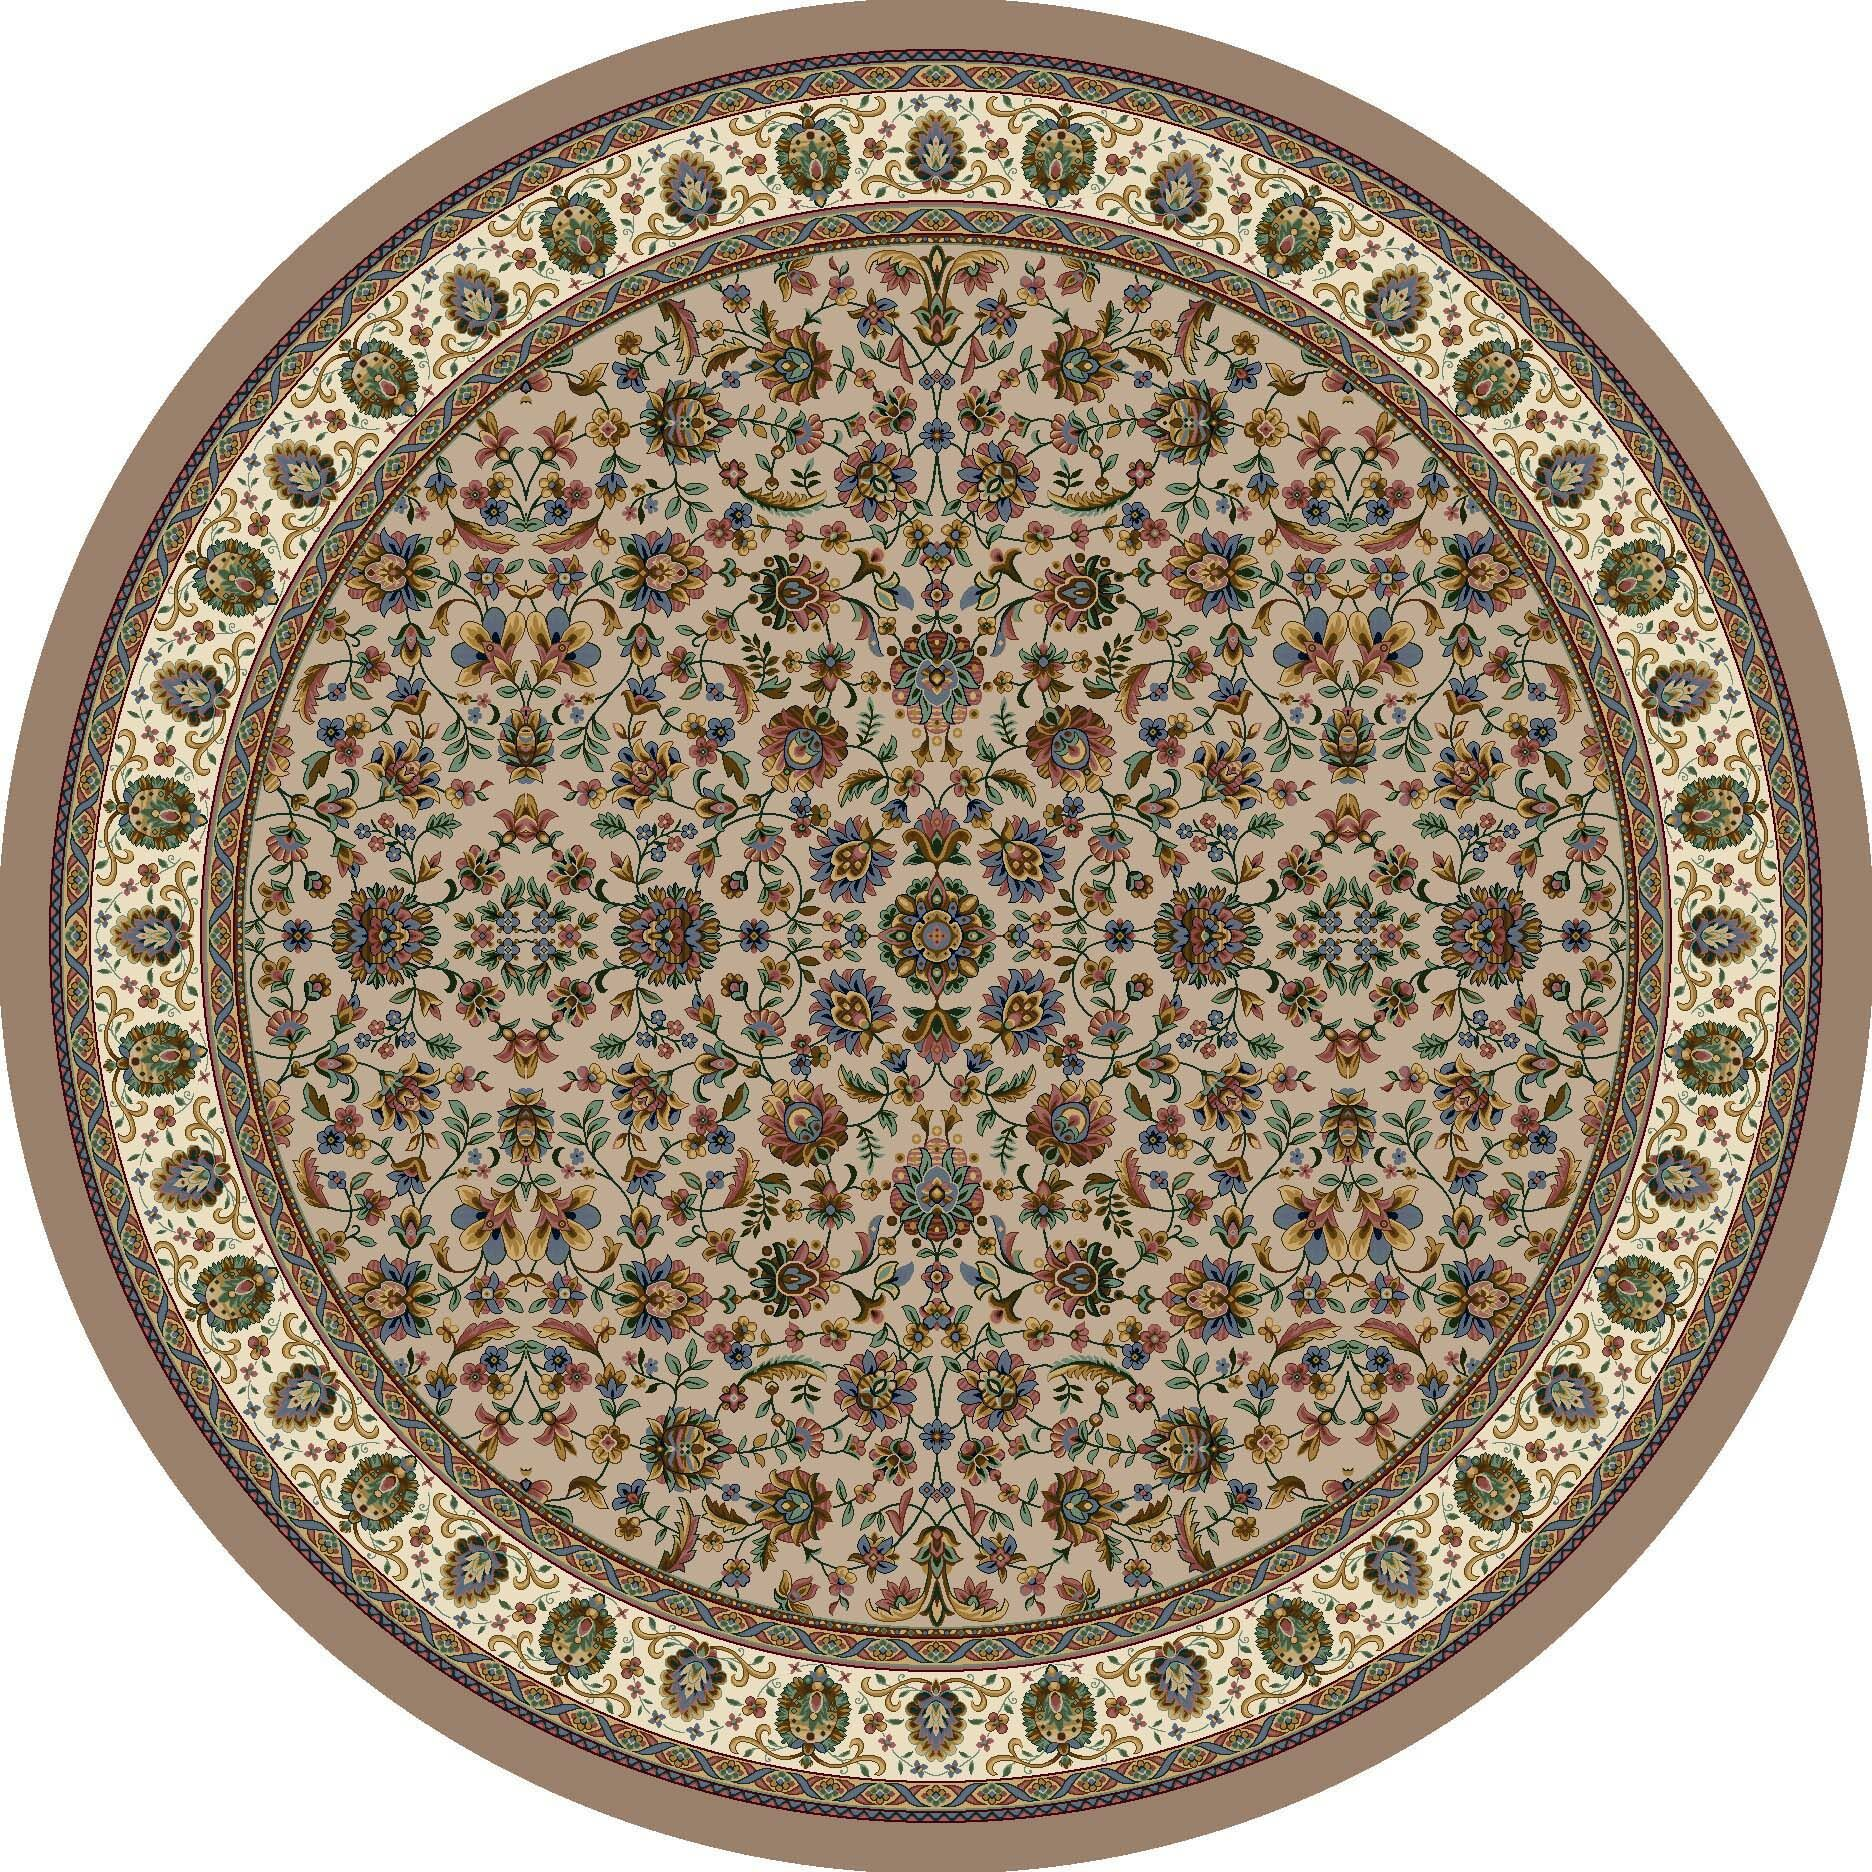 Signature Persian Palace Sandstone Area Rug Rug Size: Round 7'7